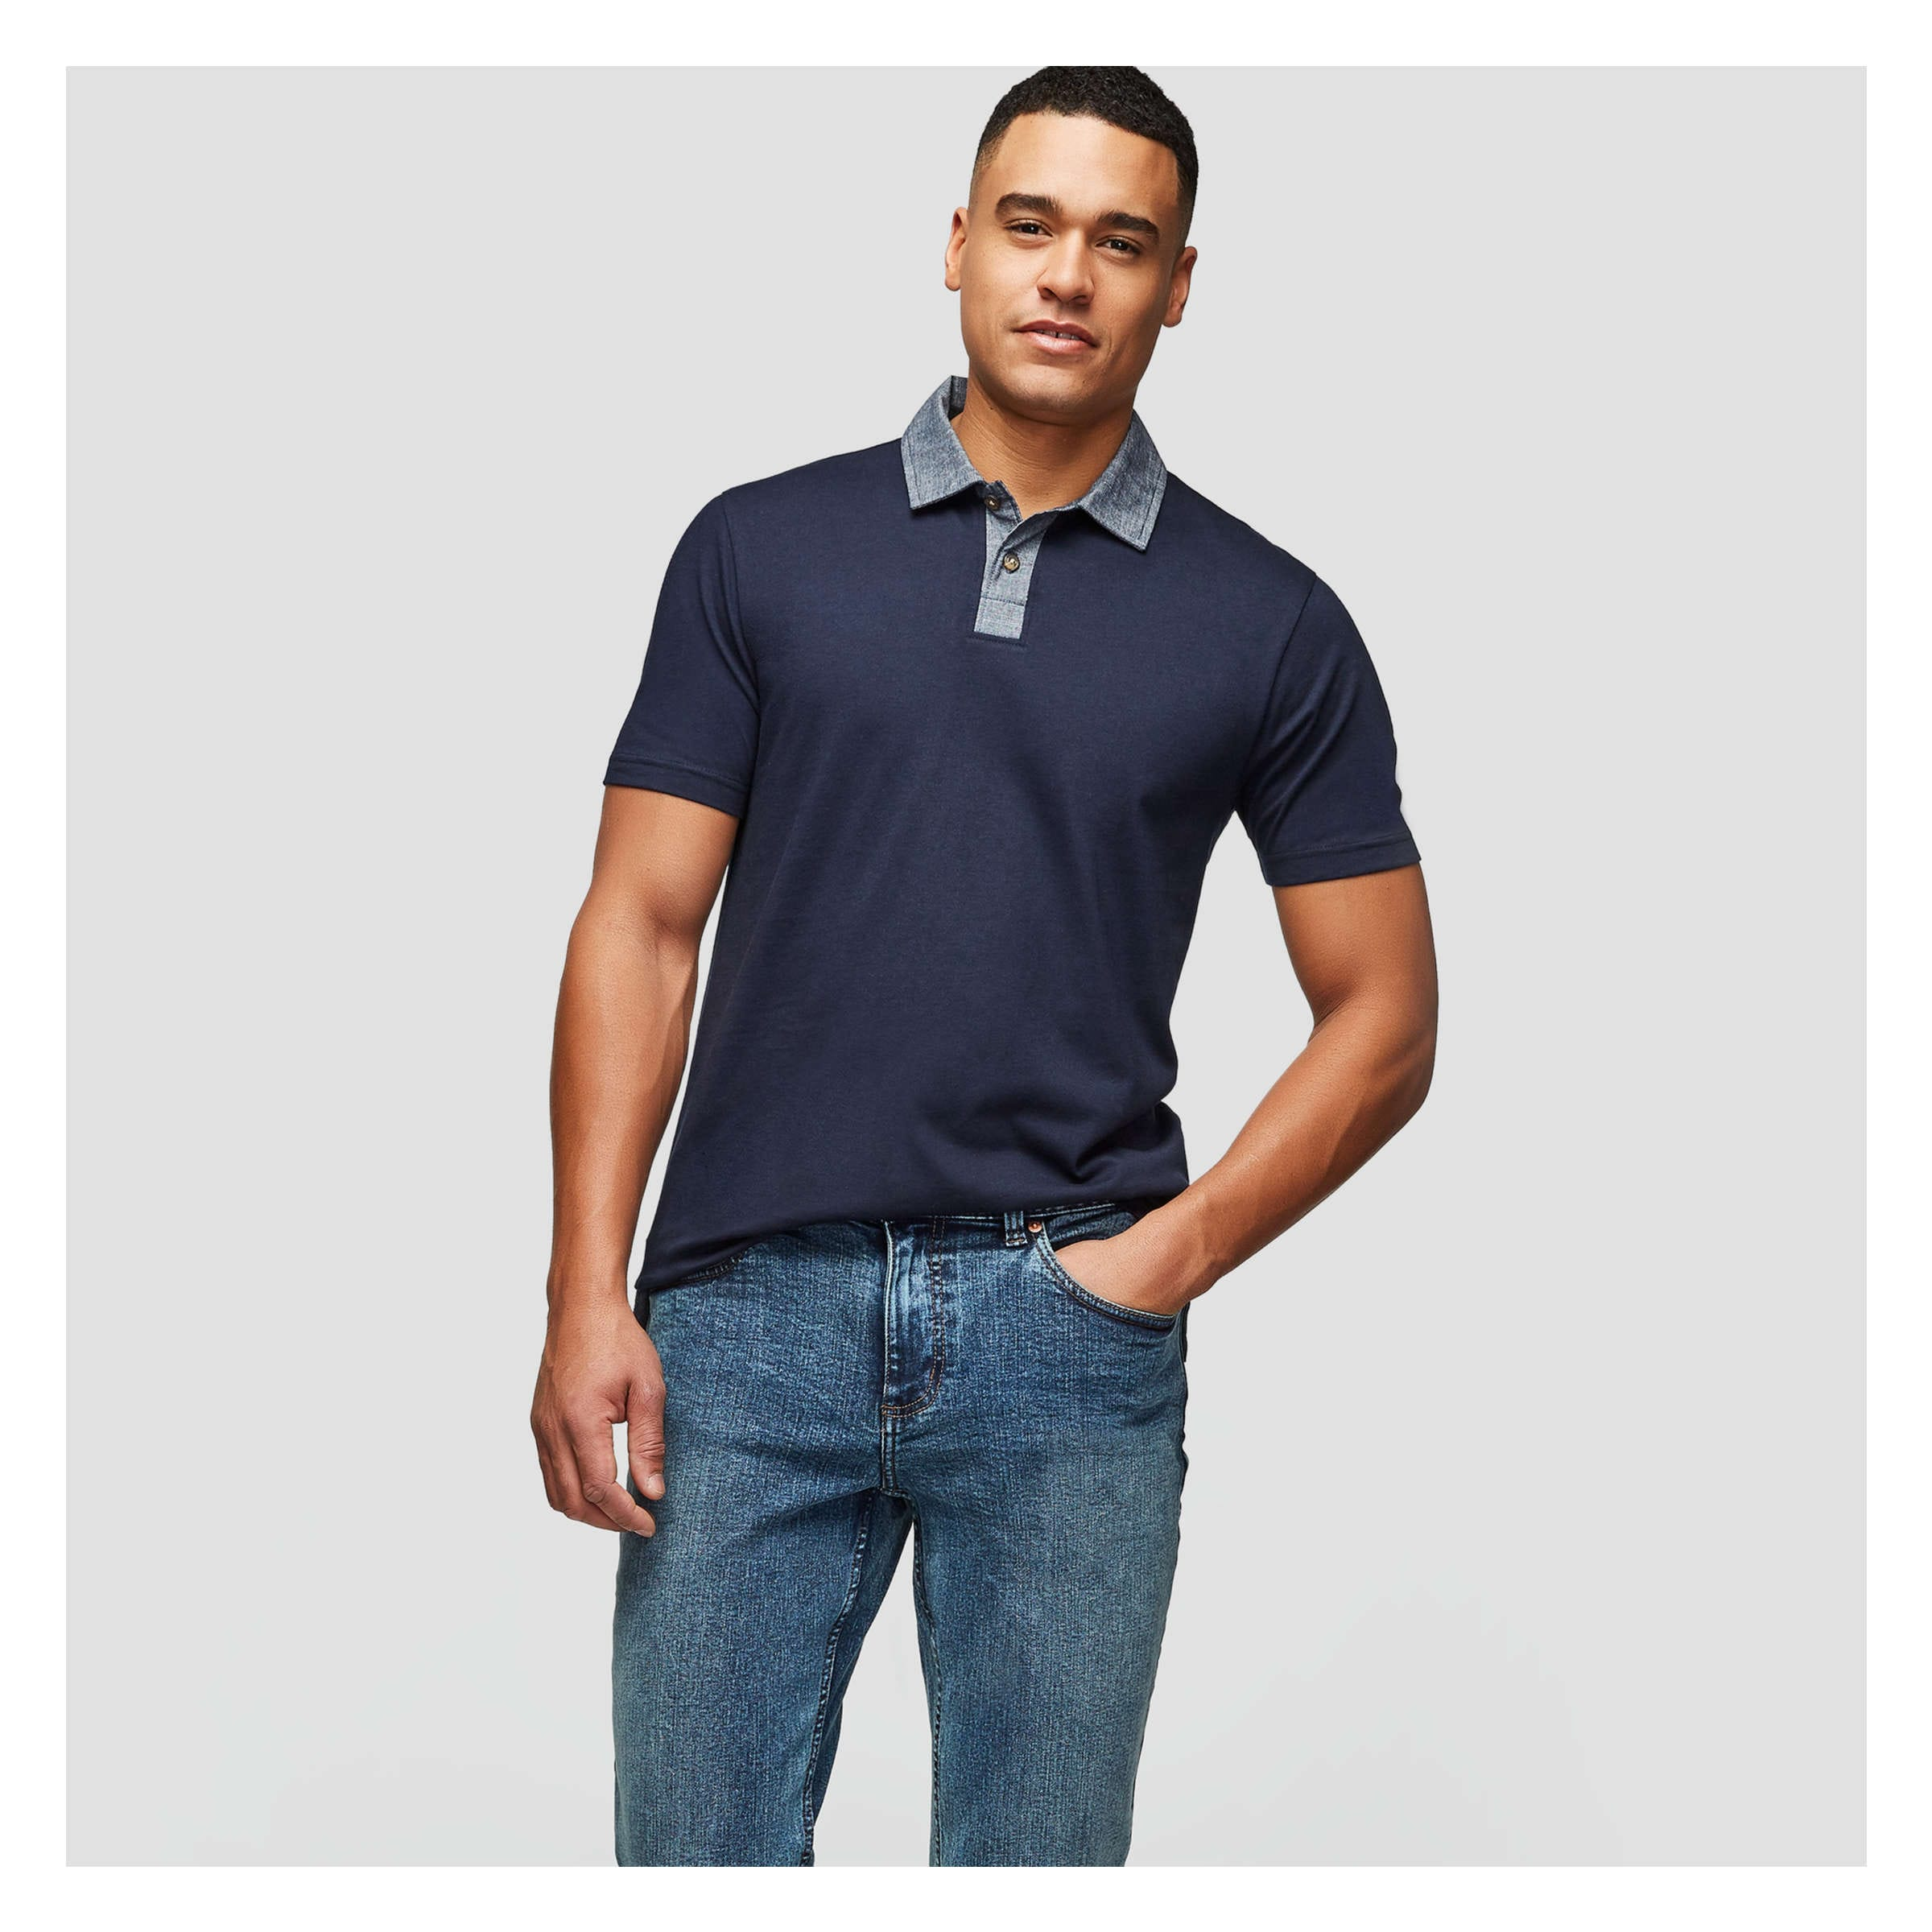 7336554e Men's Chambray Collar Polo in JF Midnight Blue from Joe Fresh